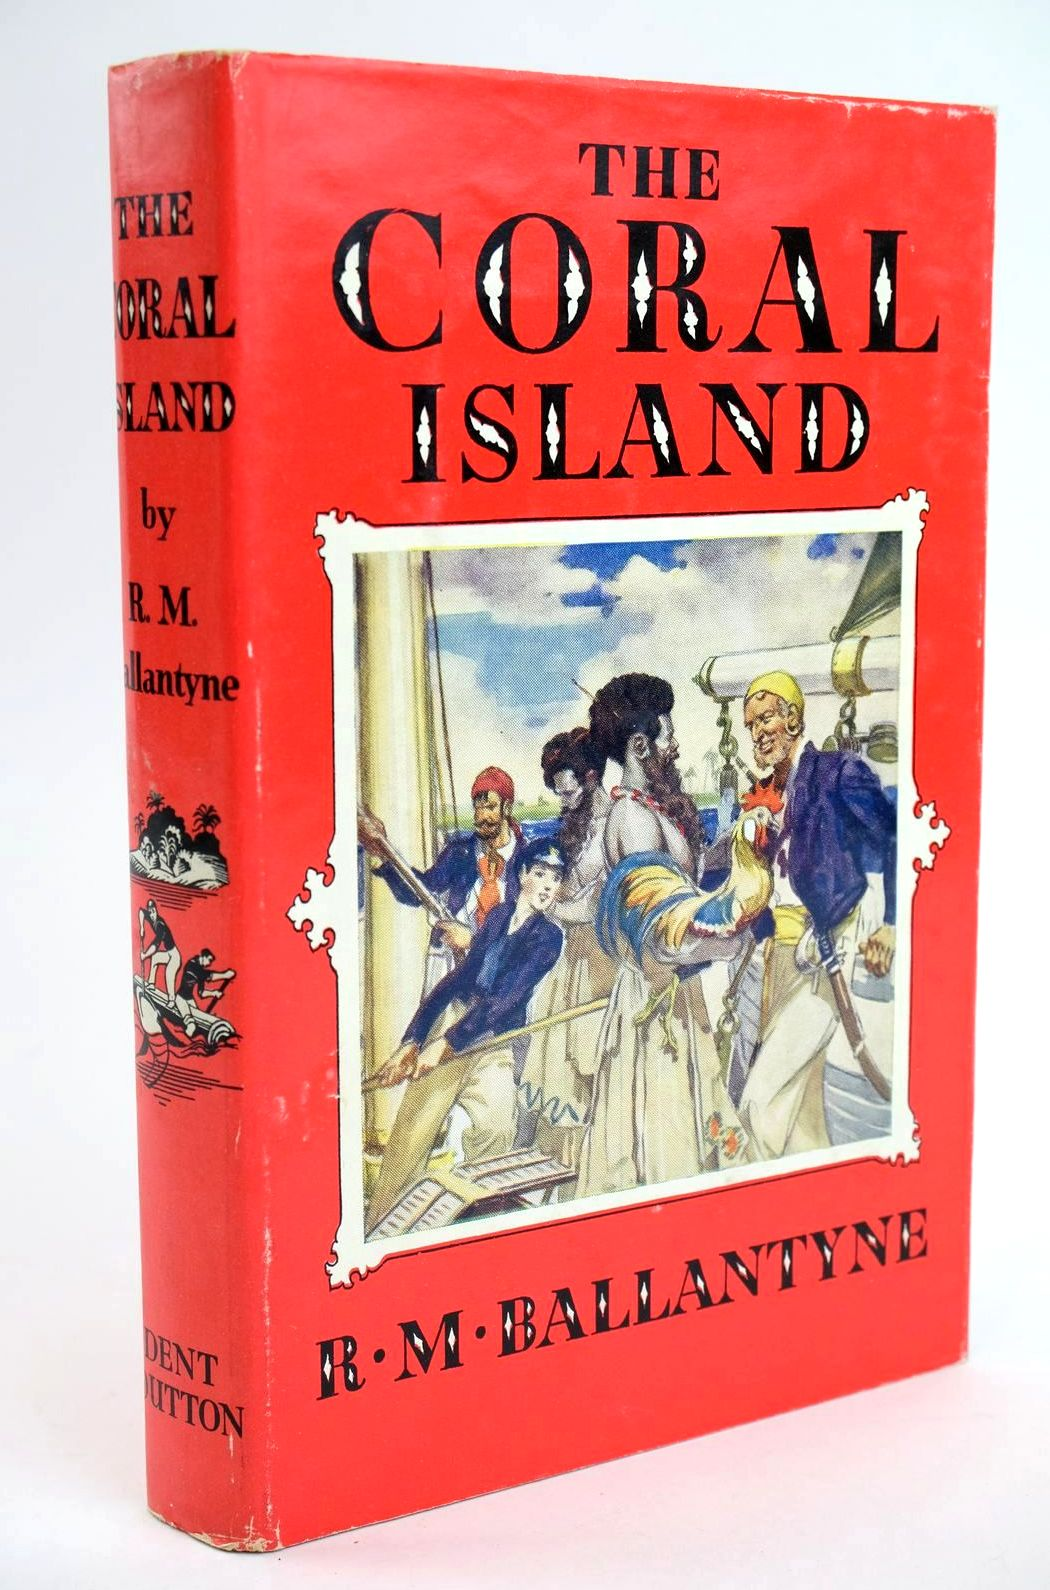 Photo of THE CORAL ISLAND written by Ballantyne, R.M. illustrated by Bates, Leo published by J.M. Dent & Sons Ltd., E.P. Dutton & Co. Inc. (STOCK CODE: 1319252)  for sale by Stella & Rose's Books